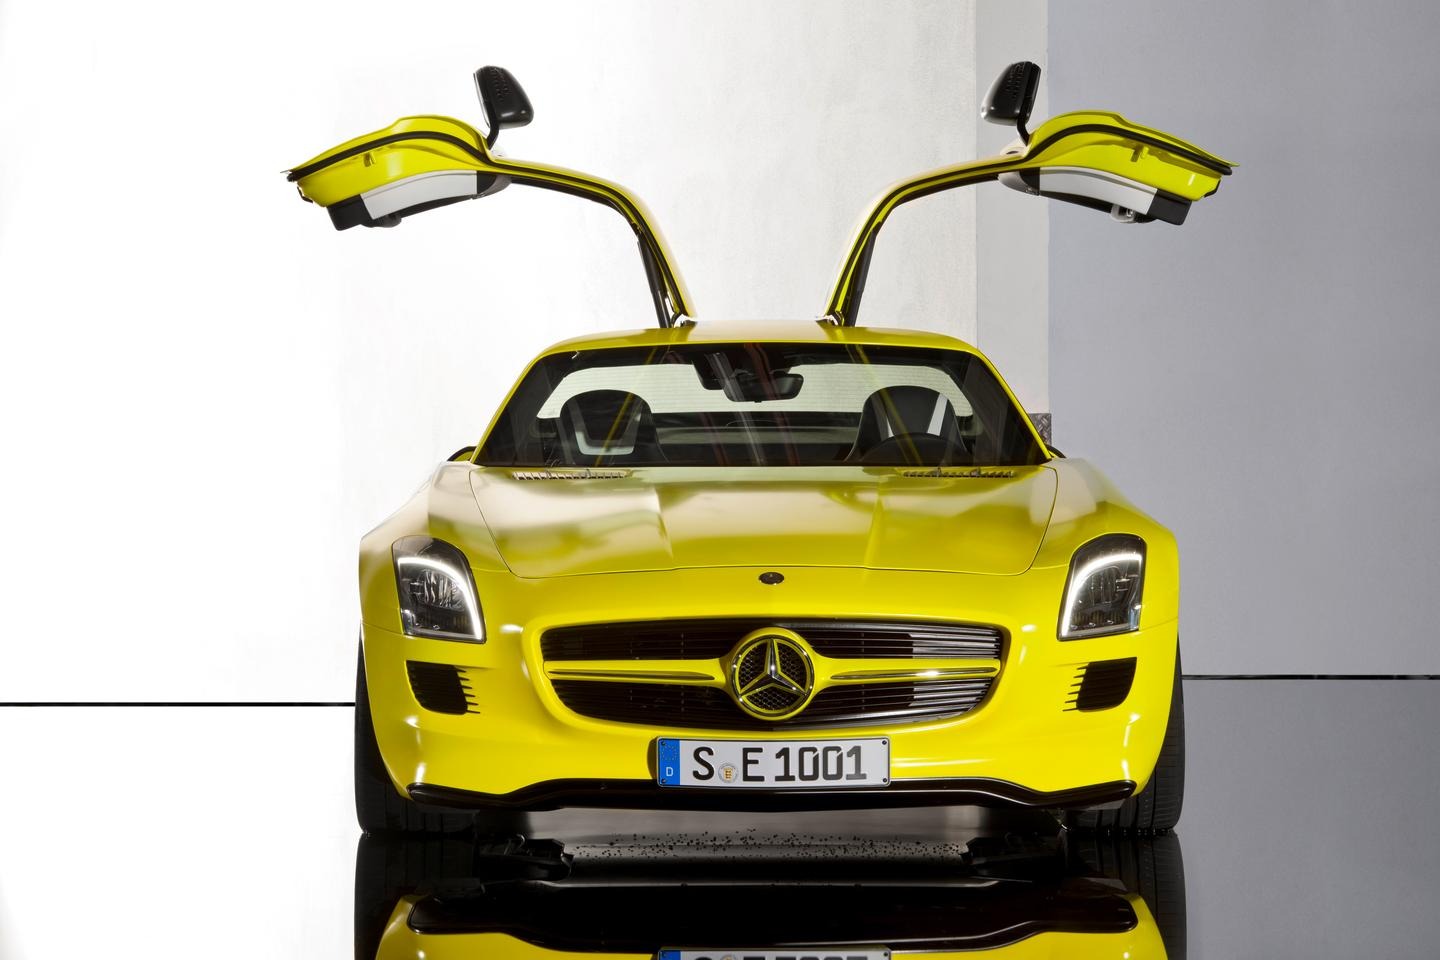 The gullwinged Mercedes-Benz SLS AMG E-CELL